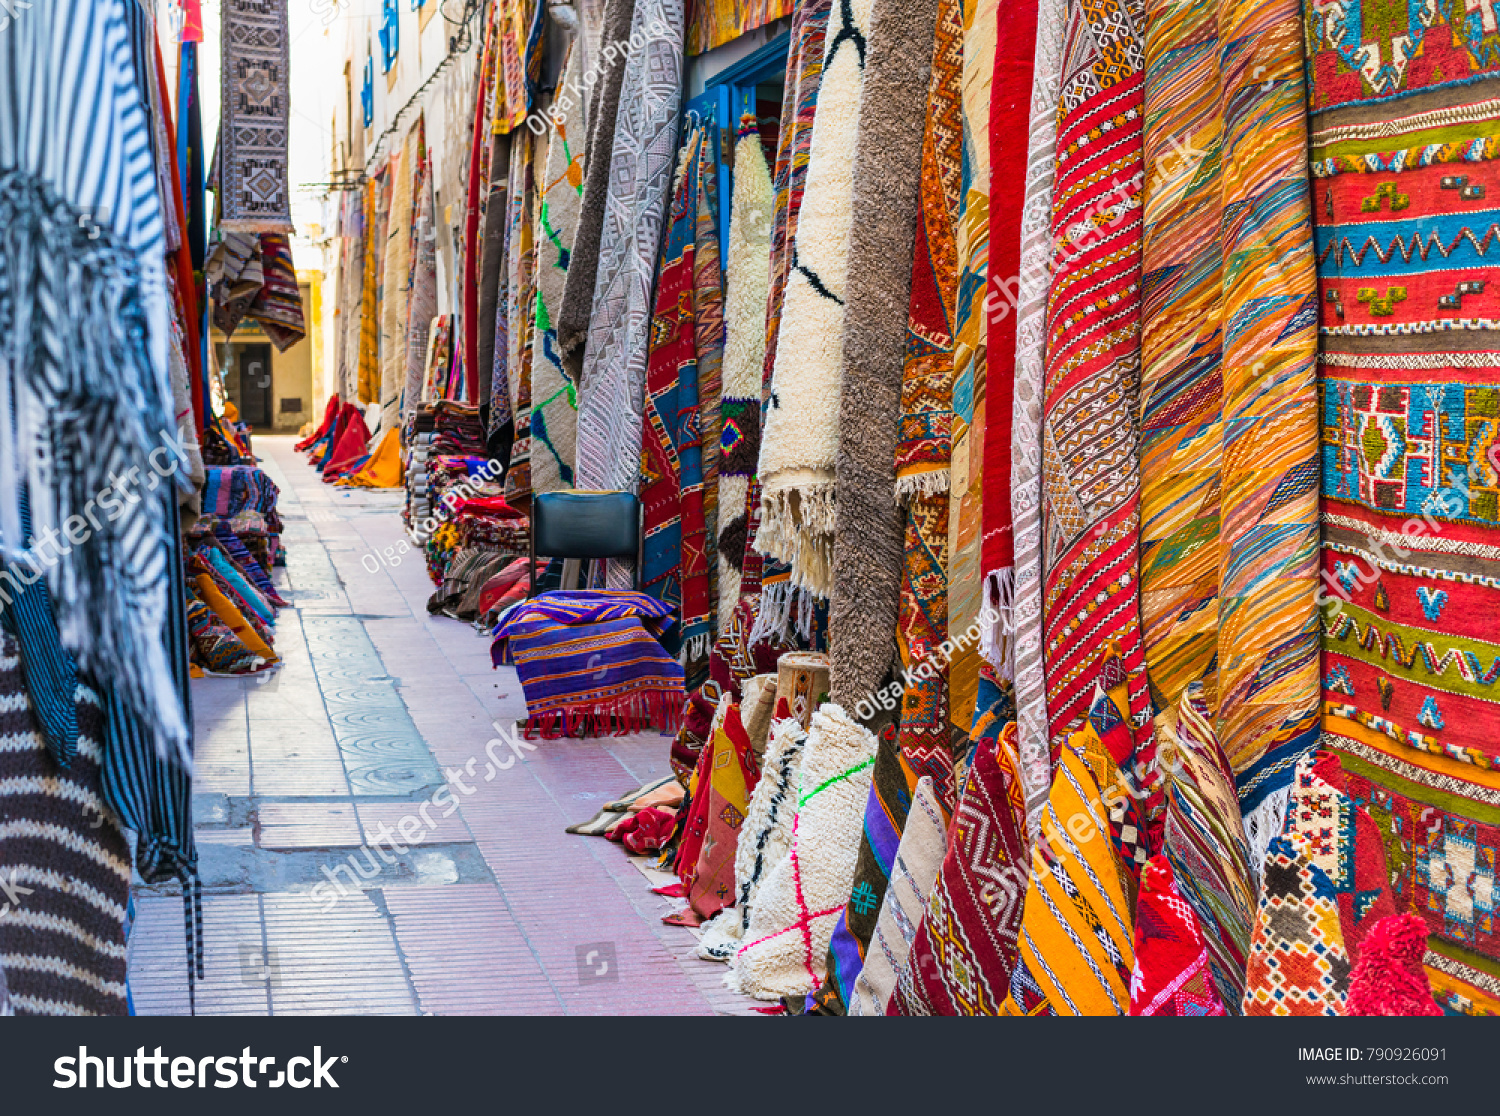 Bright pictures of colorful Morocco 55